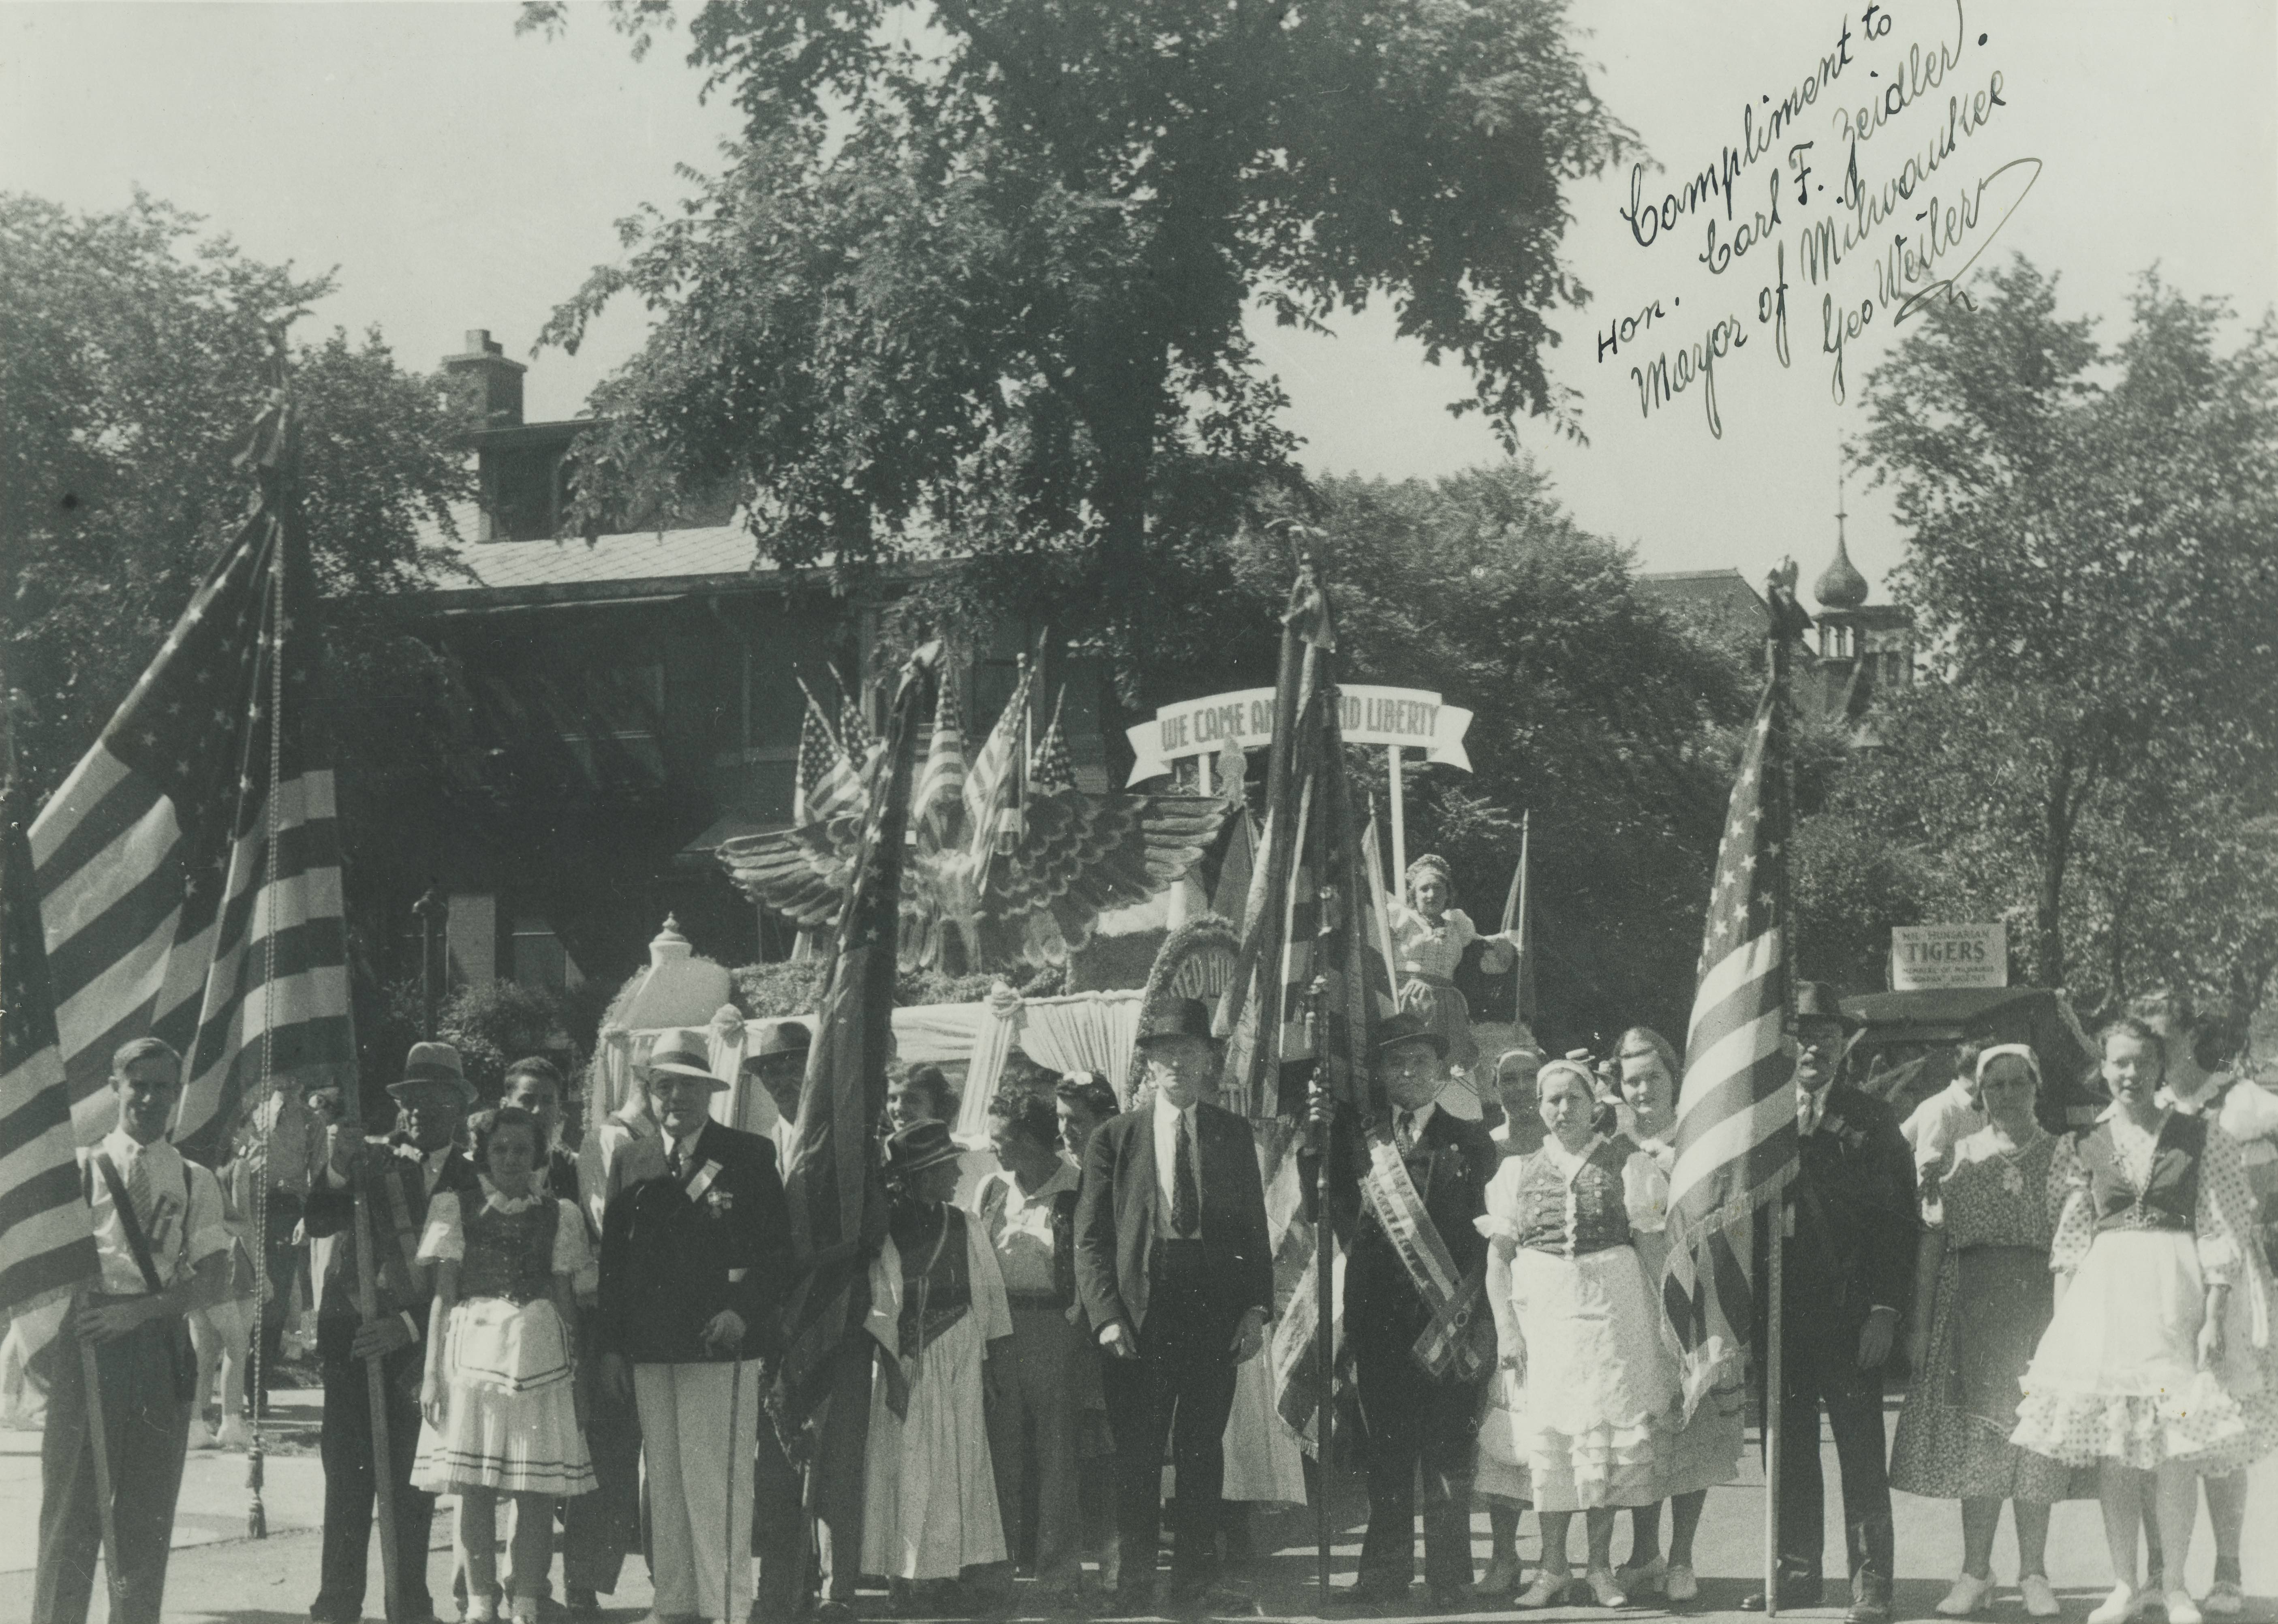 <table class=&quot;lightbox&quot;><tr><td colspan=2 class=&quot;lightbox-title&quot;>Hungarians' Liberty Float</td></tr><tr><td colspan=2 class=&quot;lightbox-caption&quot;>A group of of people from the U.S. American Hungarian Societies of Wisconsin stand in front of their float at the 1940 Midsummer Festival.</td></tr><tr><td colspan=2 class=&quot;lightbox-spacer&quot;></td></tr><tr class=&quot;lightbox-detail&quot;><td class=&quot;cell-title&quot;>Source: </td><td class=&quot;cell-value&quot;>From the Historic Photo Collection of the Milwaukee Public Library. Reprinted with permission.<br /><a href=&quot;http://content.mpl.org/cdm/singleitem/collection/HstoricPho/id/5912/rec/1&quot; target=&quot;_blank&quot;>Milwaukee Public Library</a></td></tr><tr class=&quot;filler-row&quot;><td colspan=2>&nbsp;</td></tr></table>